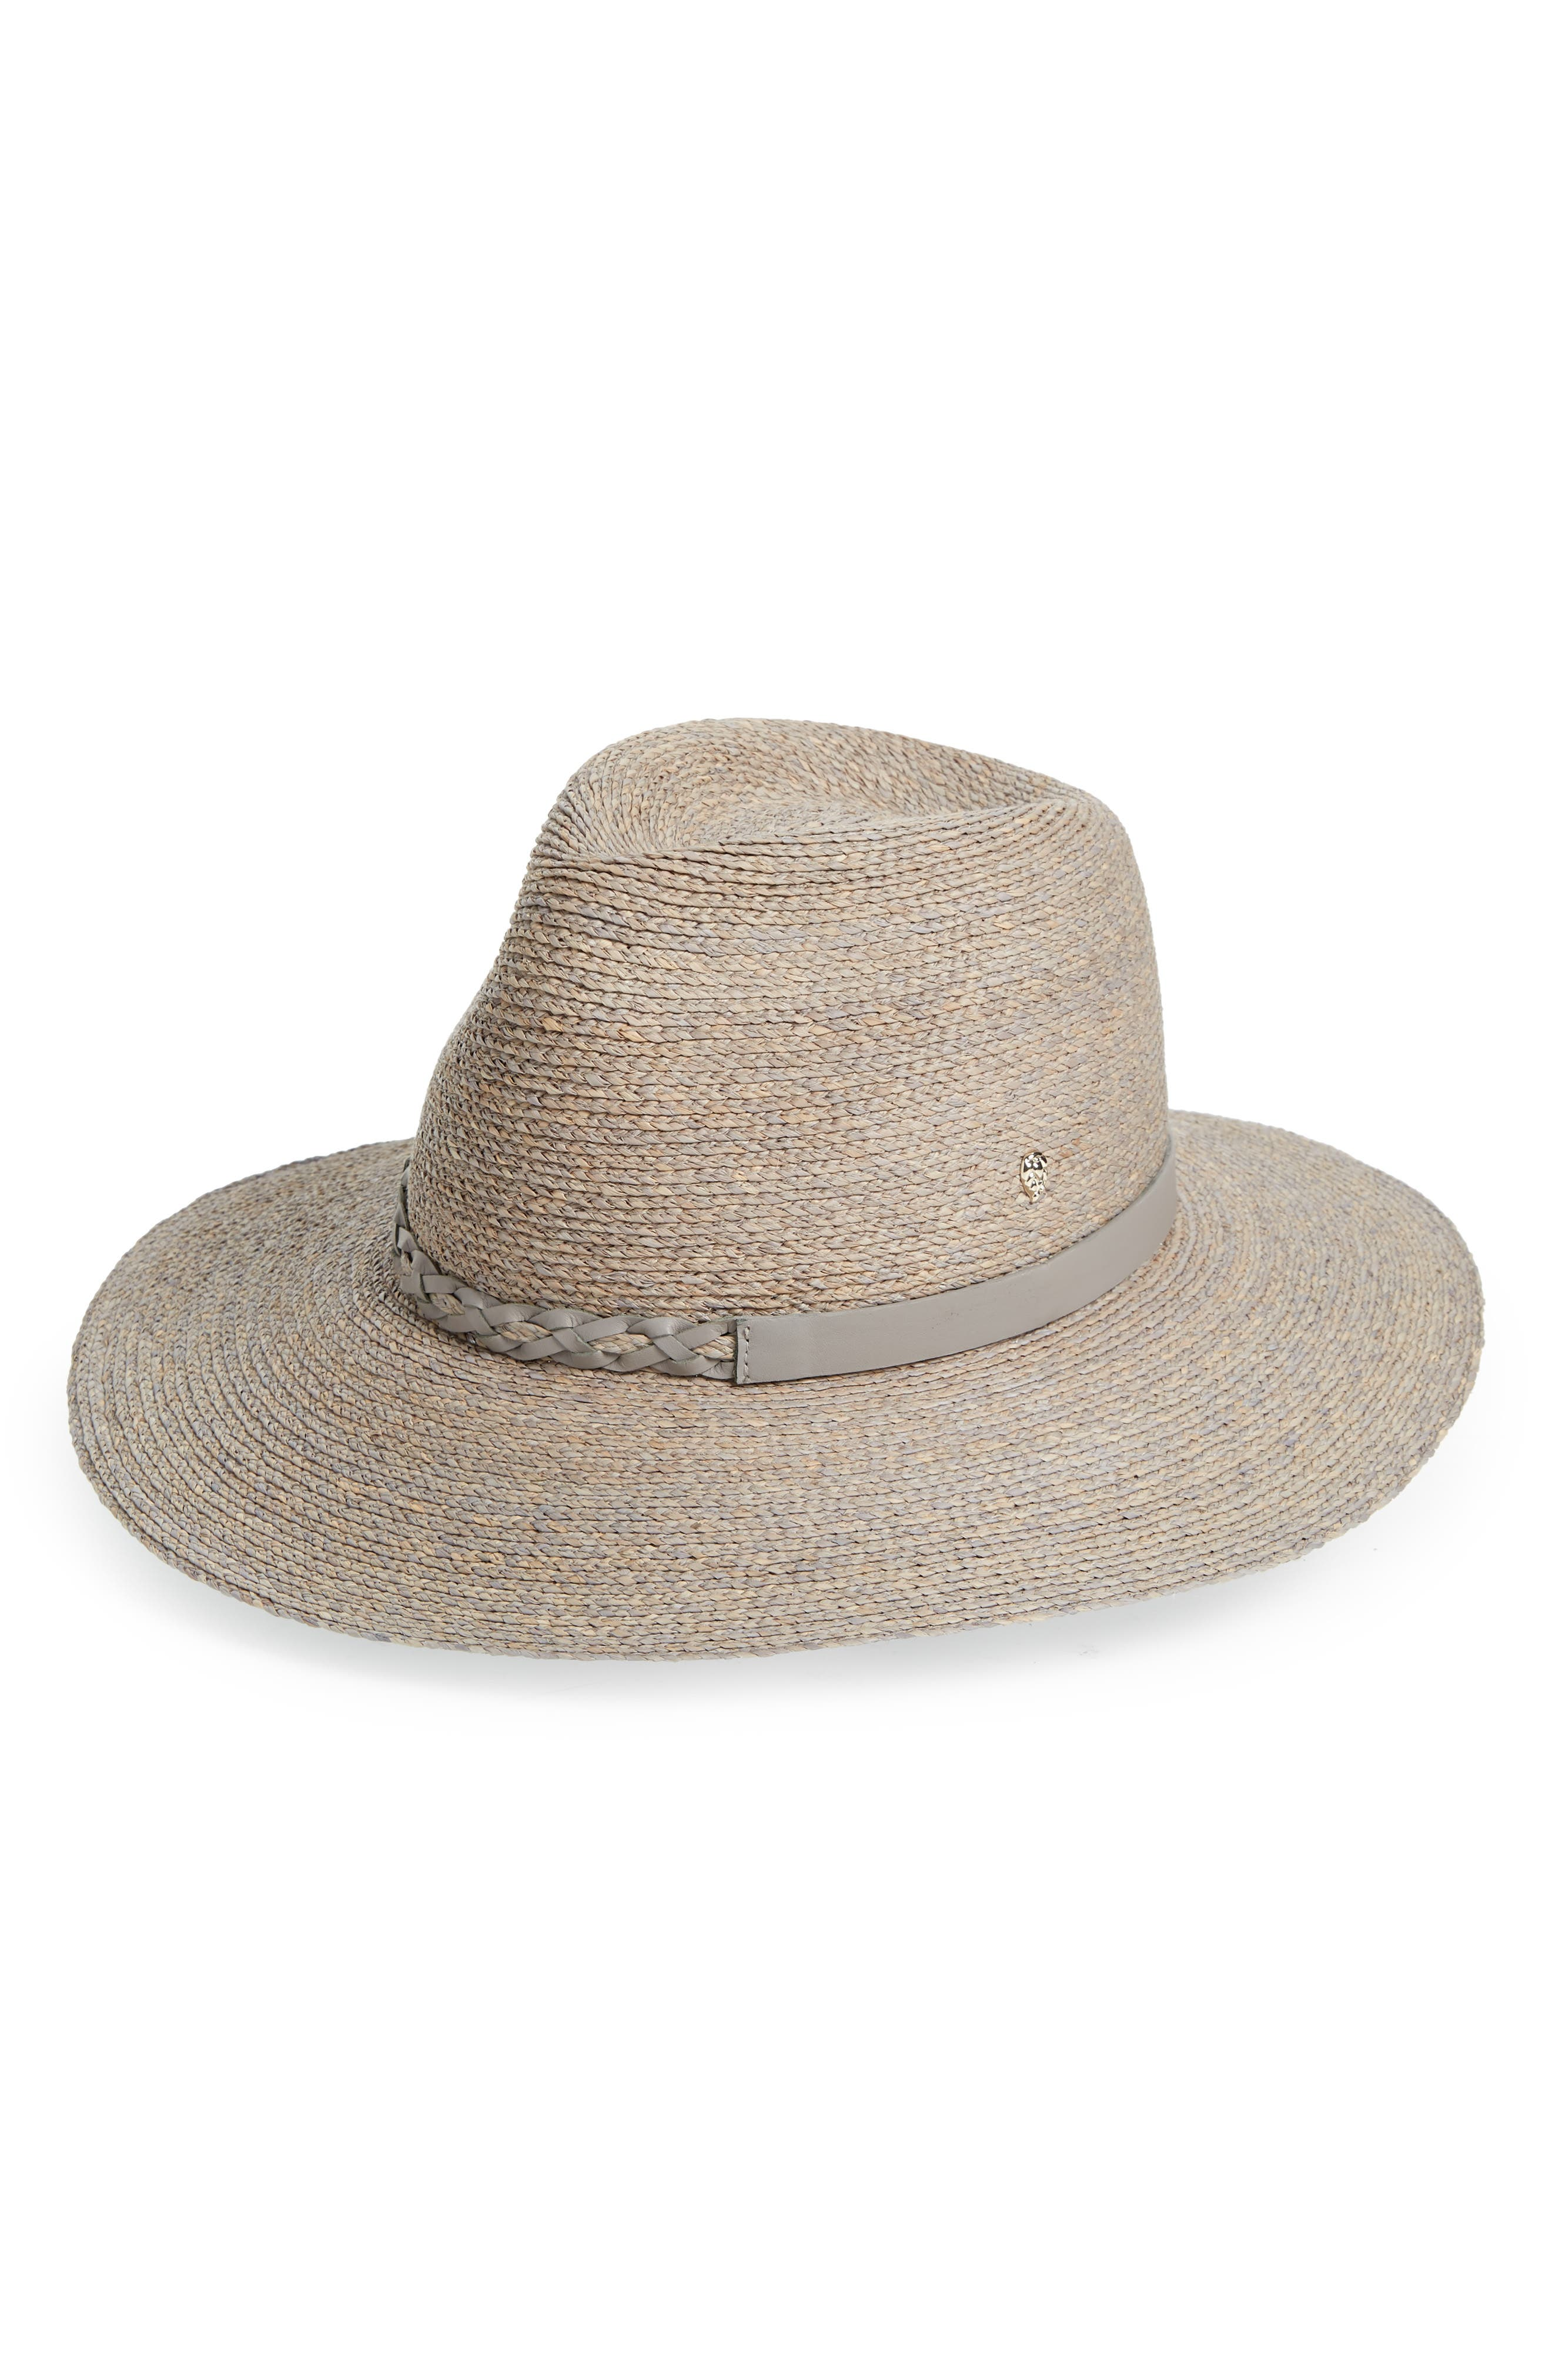 Packable Braid Raffia Fedora,                             Main thumbnail 1, color,                             025